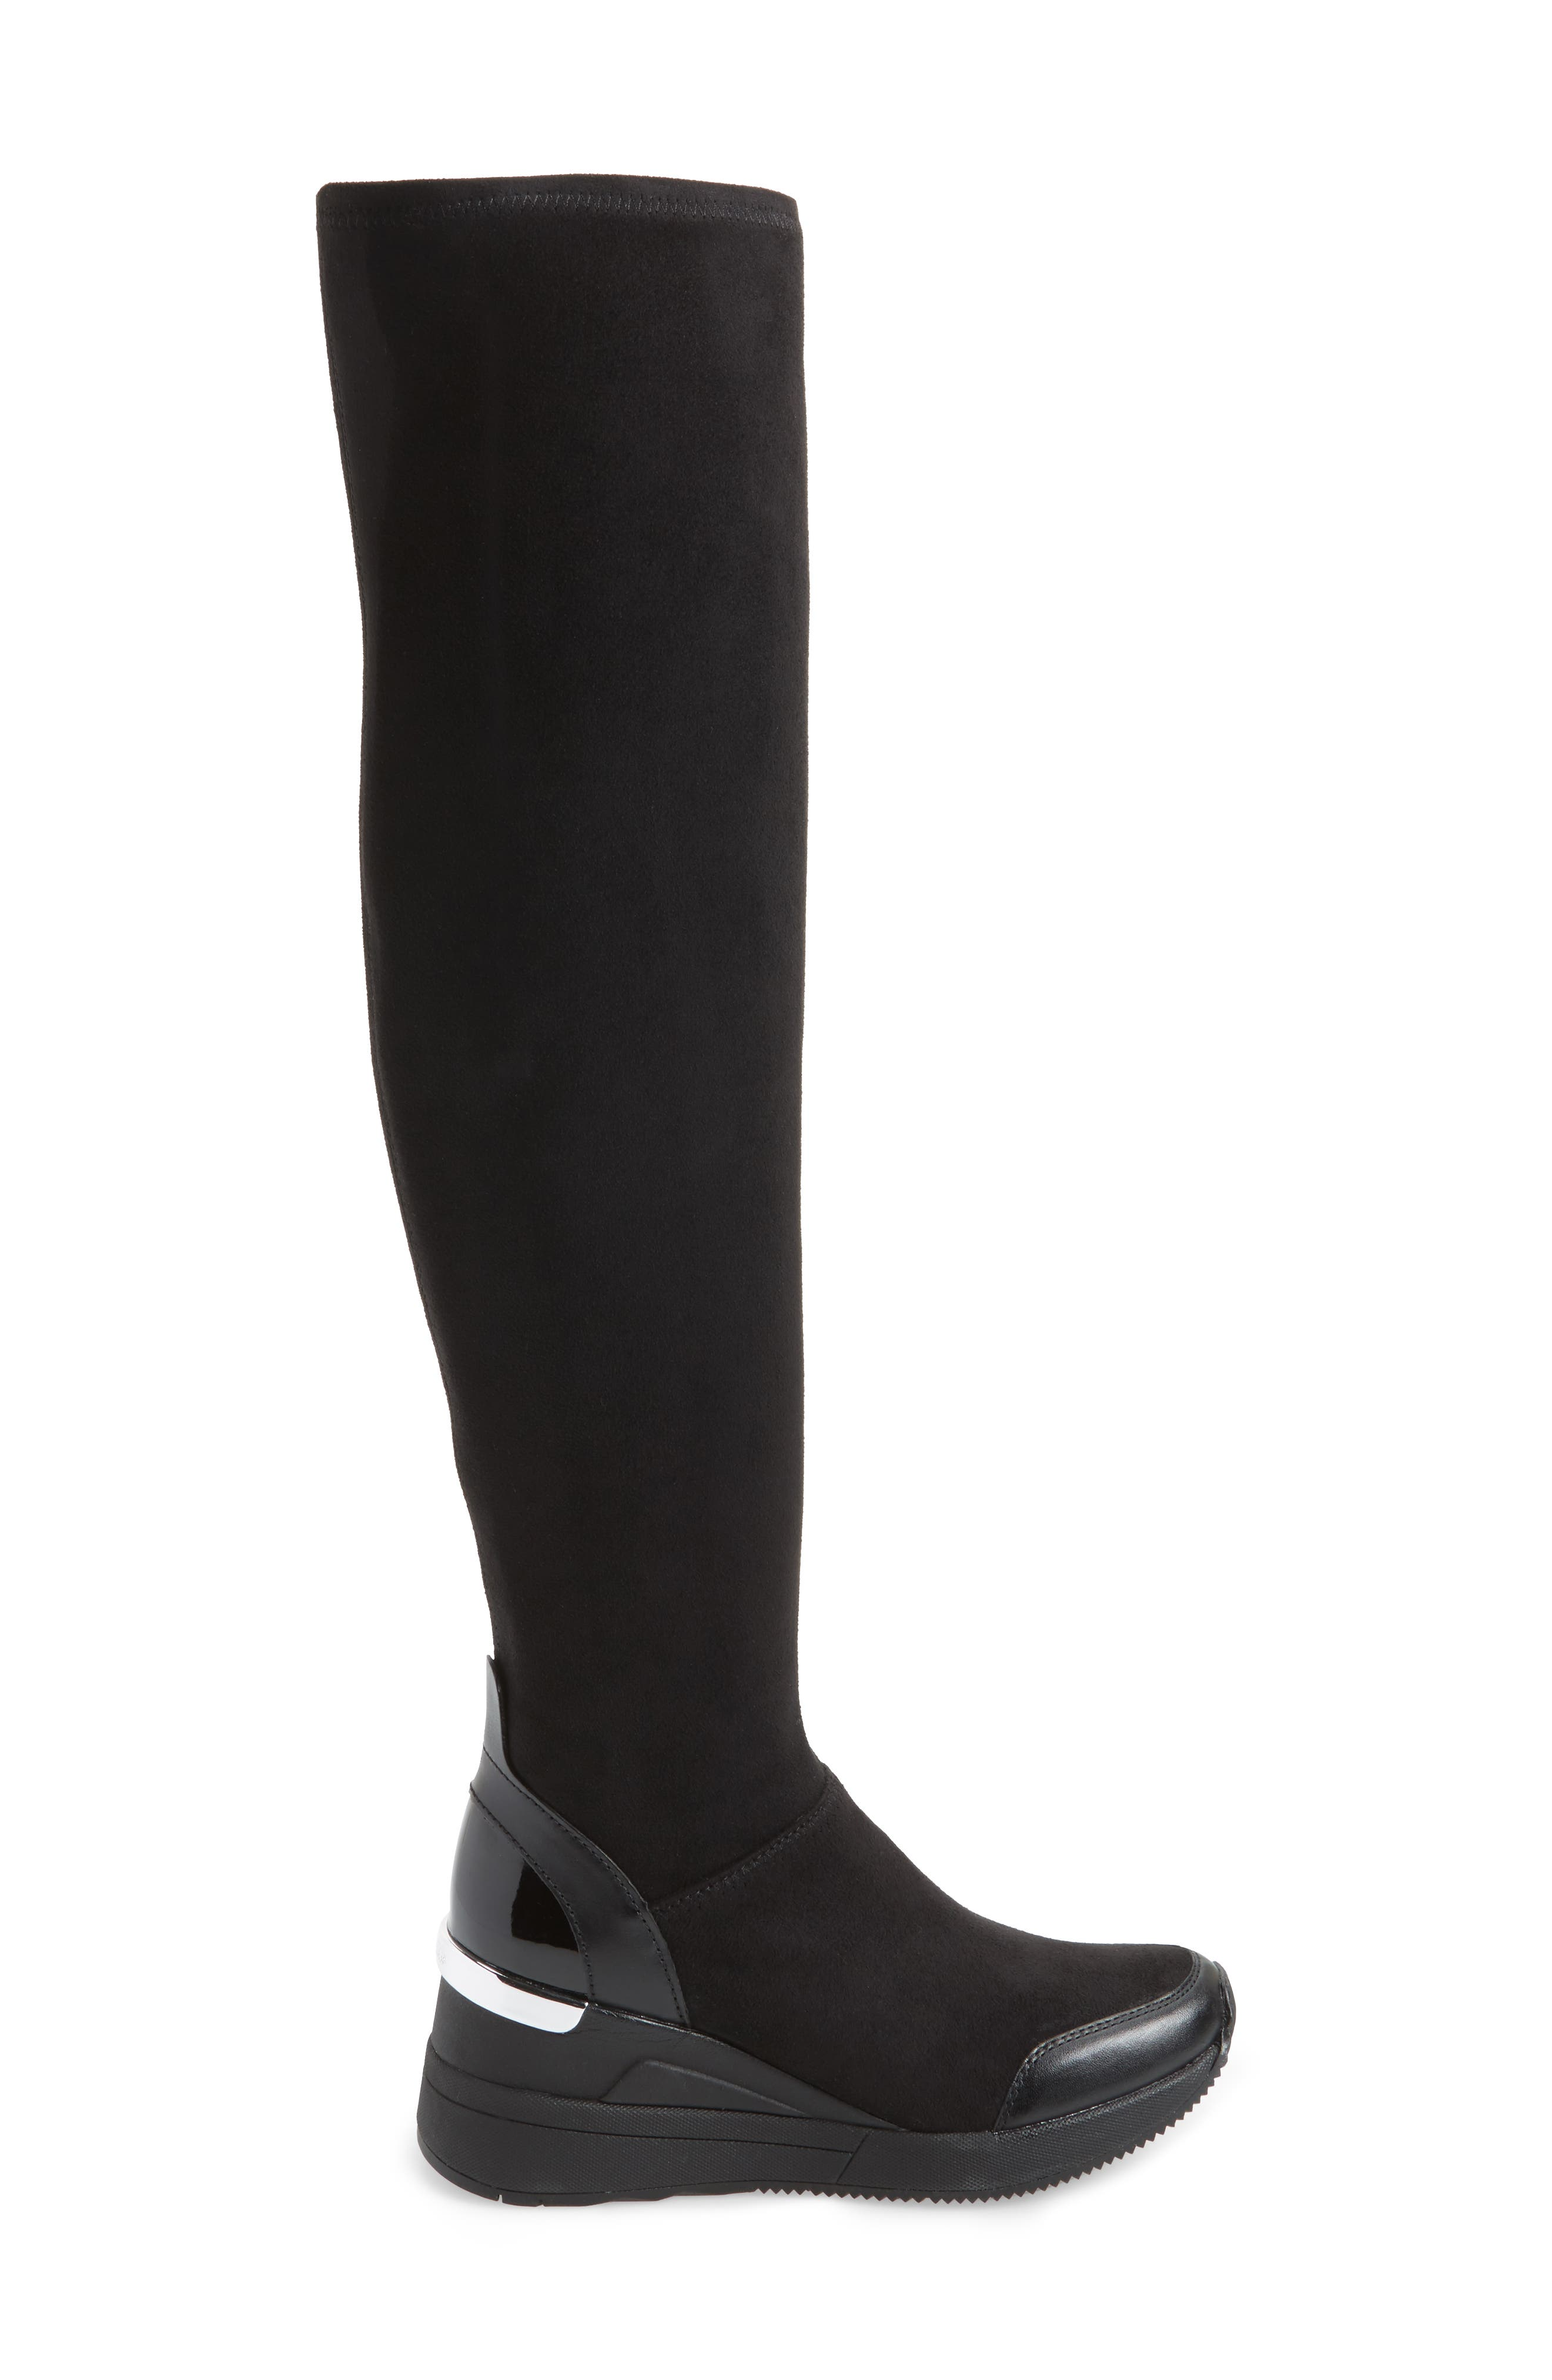 Ace Over the Knee Boot,                             Alternate thumbnail 3, color,                             002